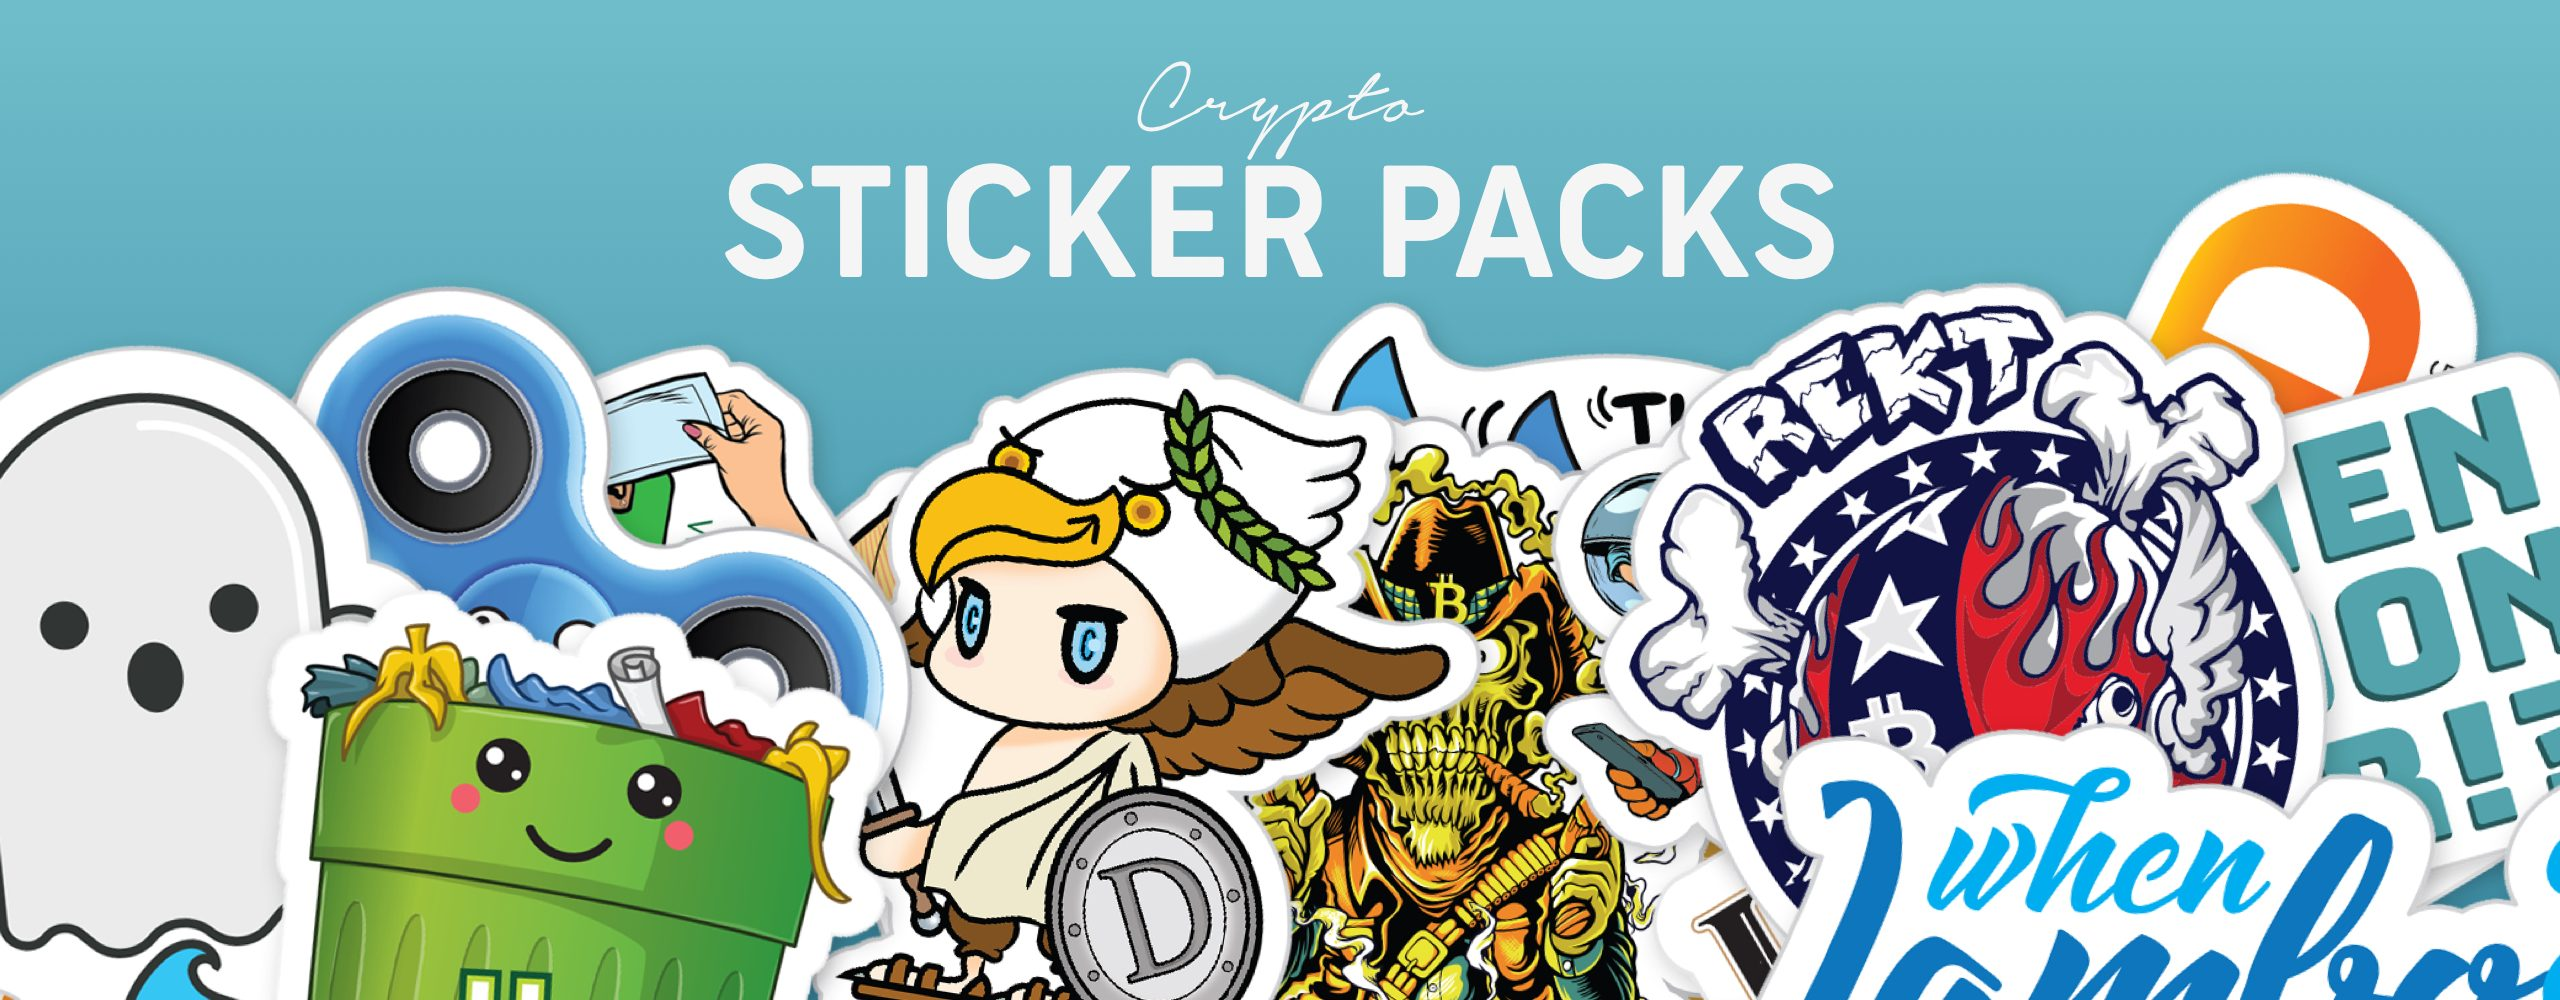 CRYPTO STICKER PACKS